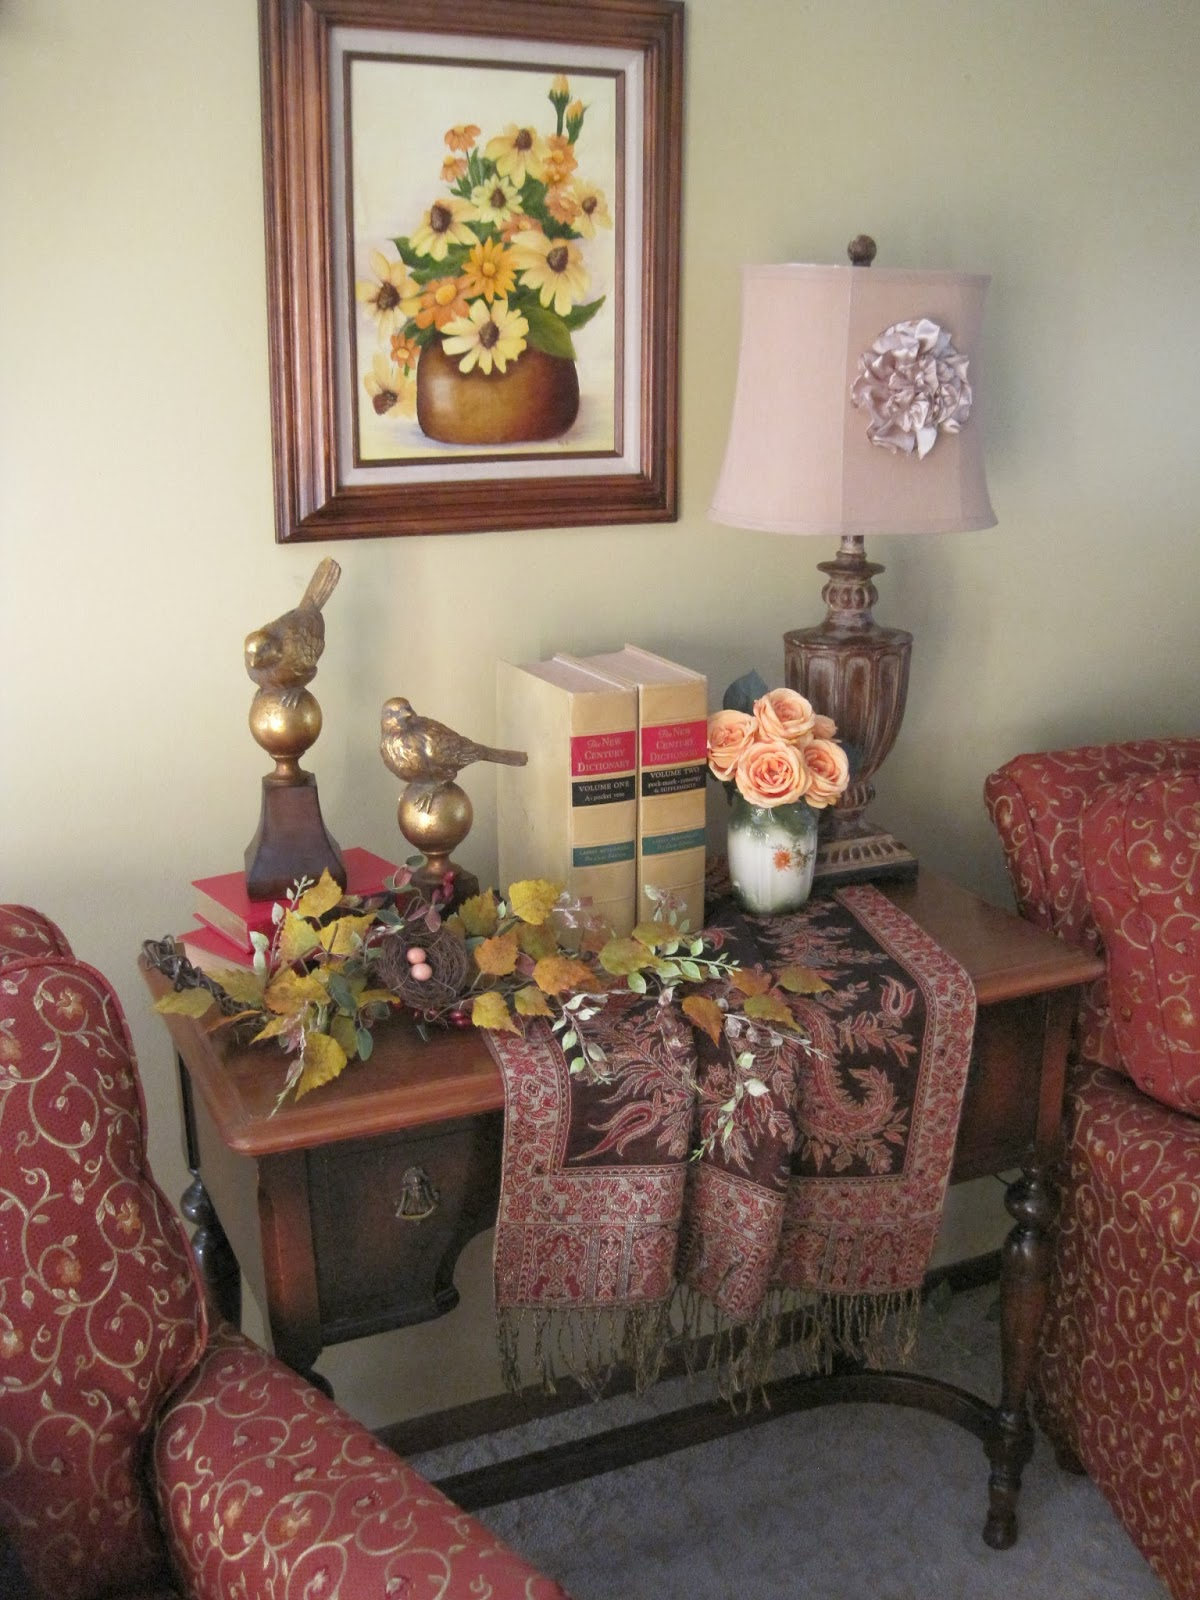 Autumn Living Room Decorating: On Crooked Creektt: Warm Autumnal Welcome